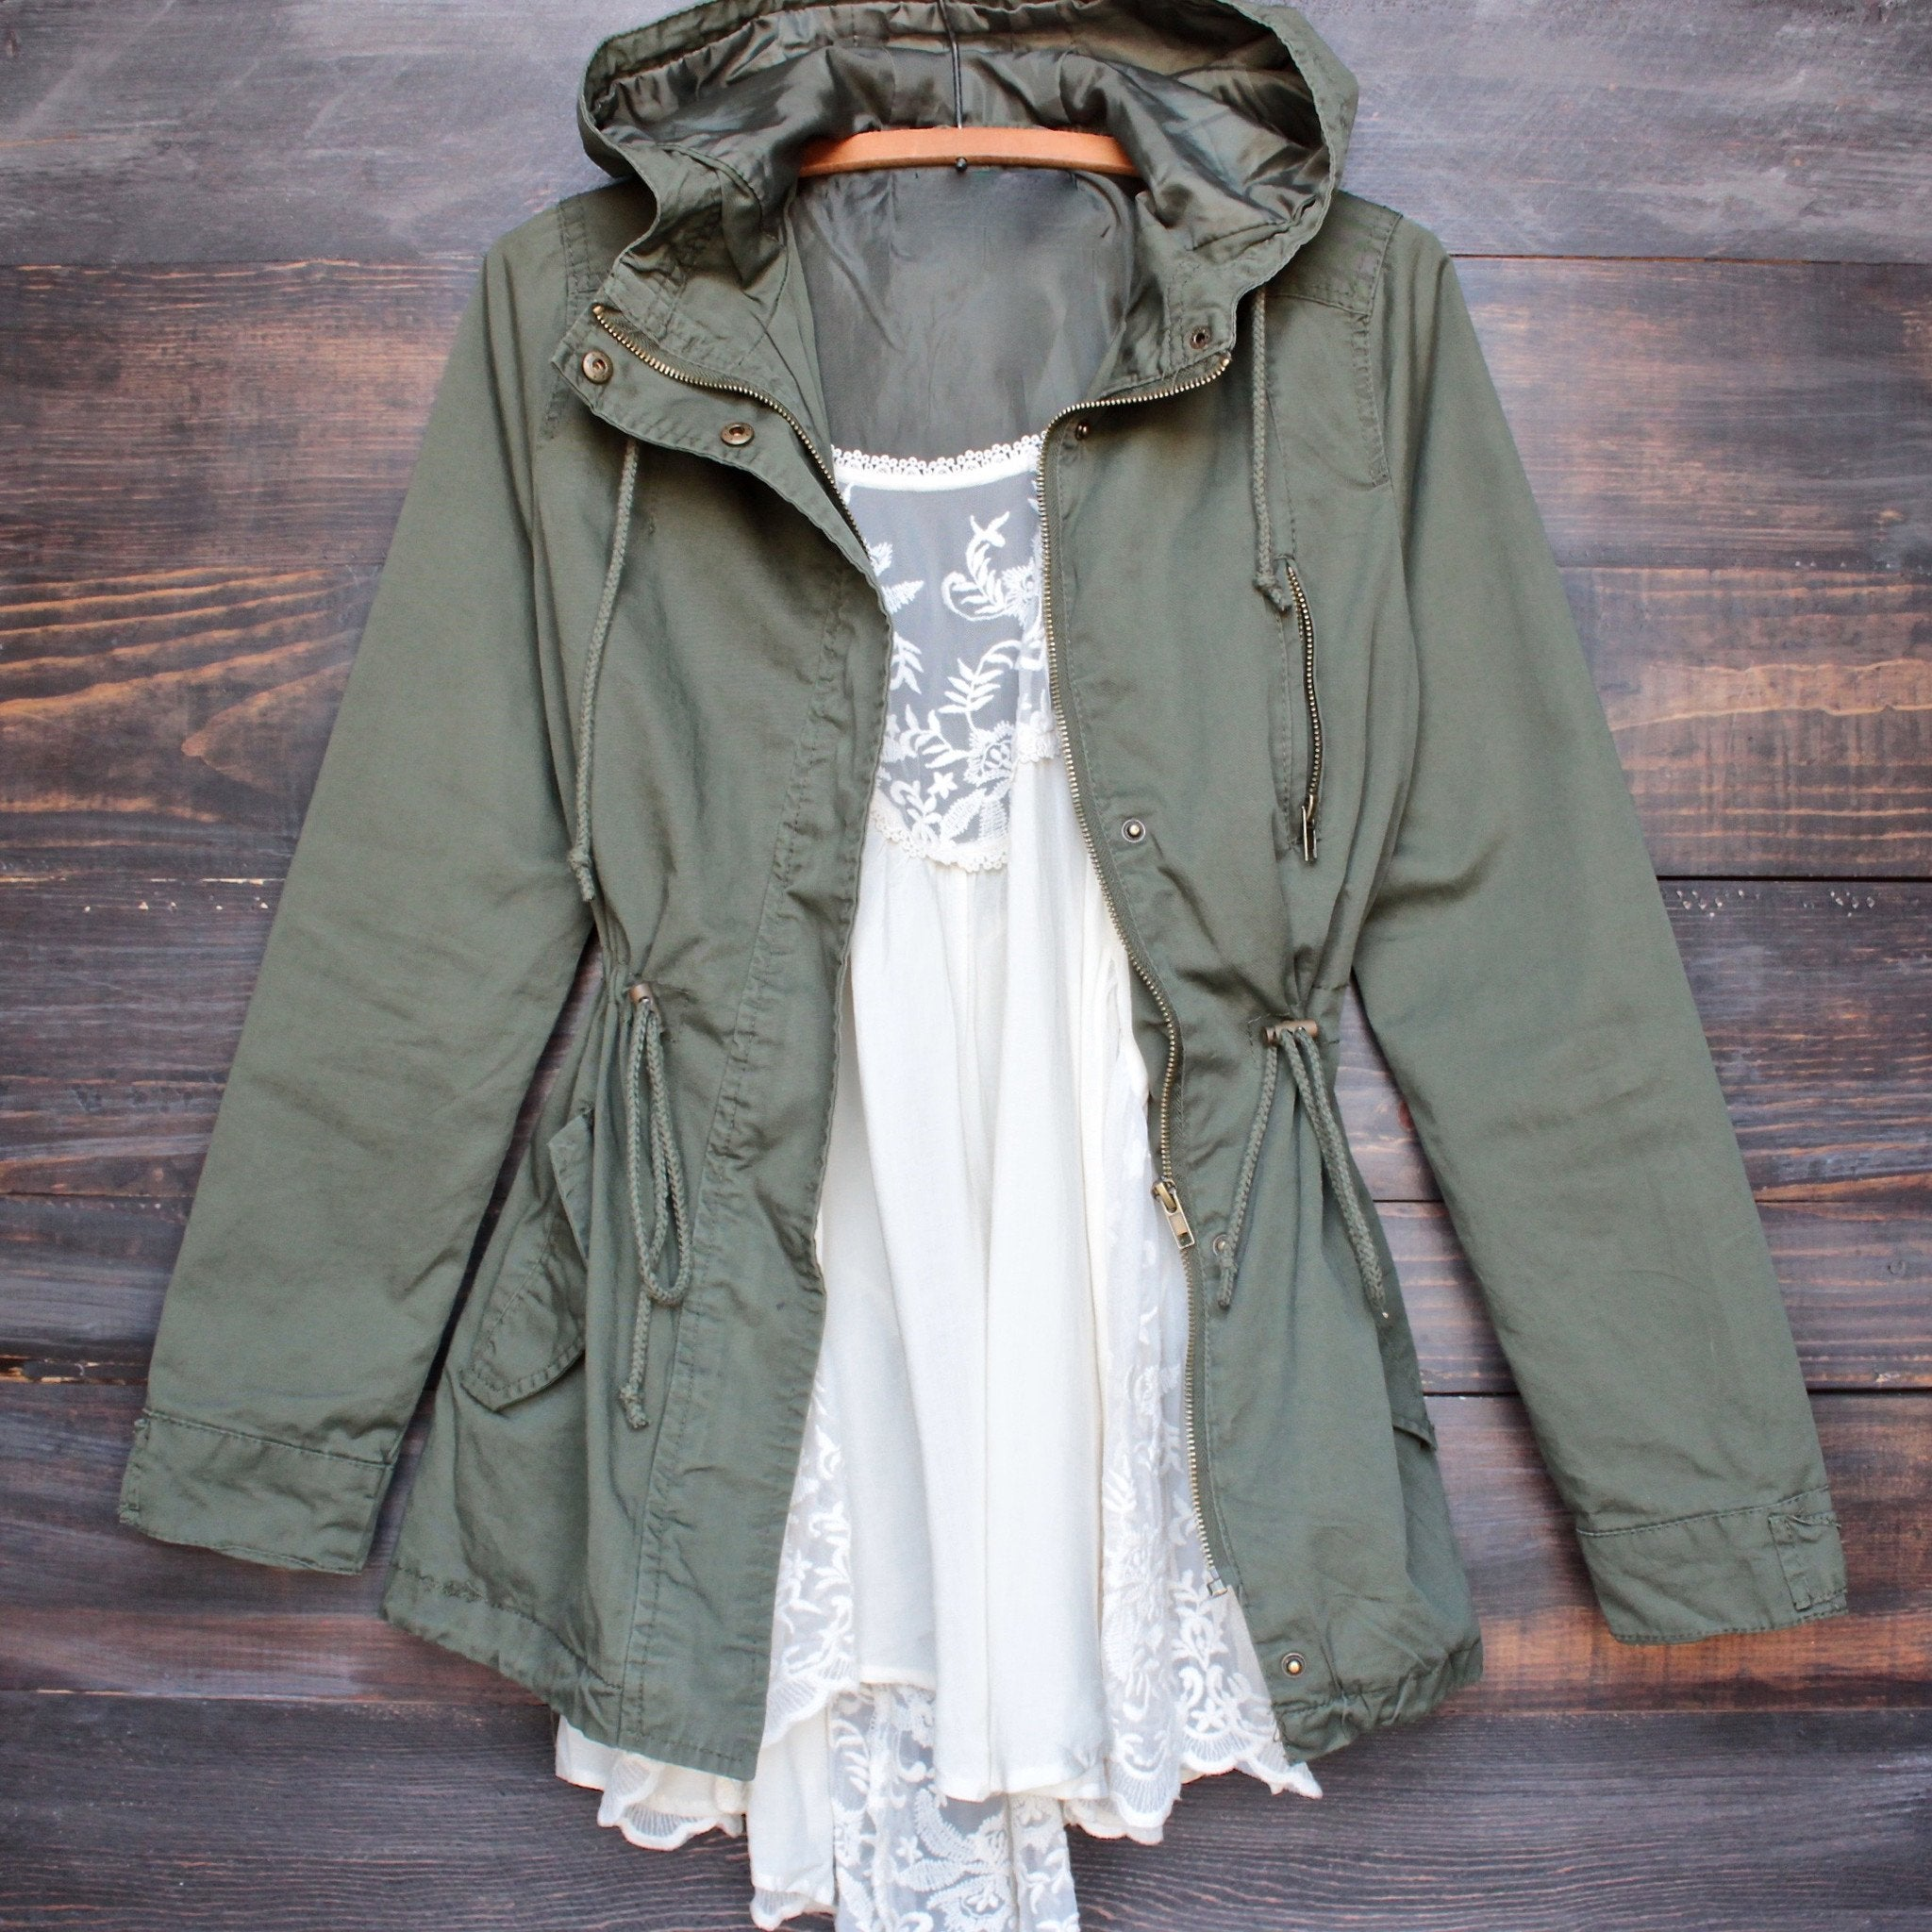 Womens hooded utility parka jacket with drawstring waist in olive green - shophearts - 1